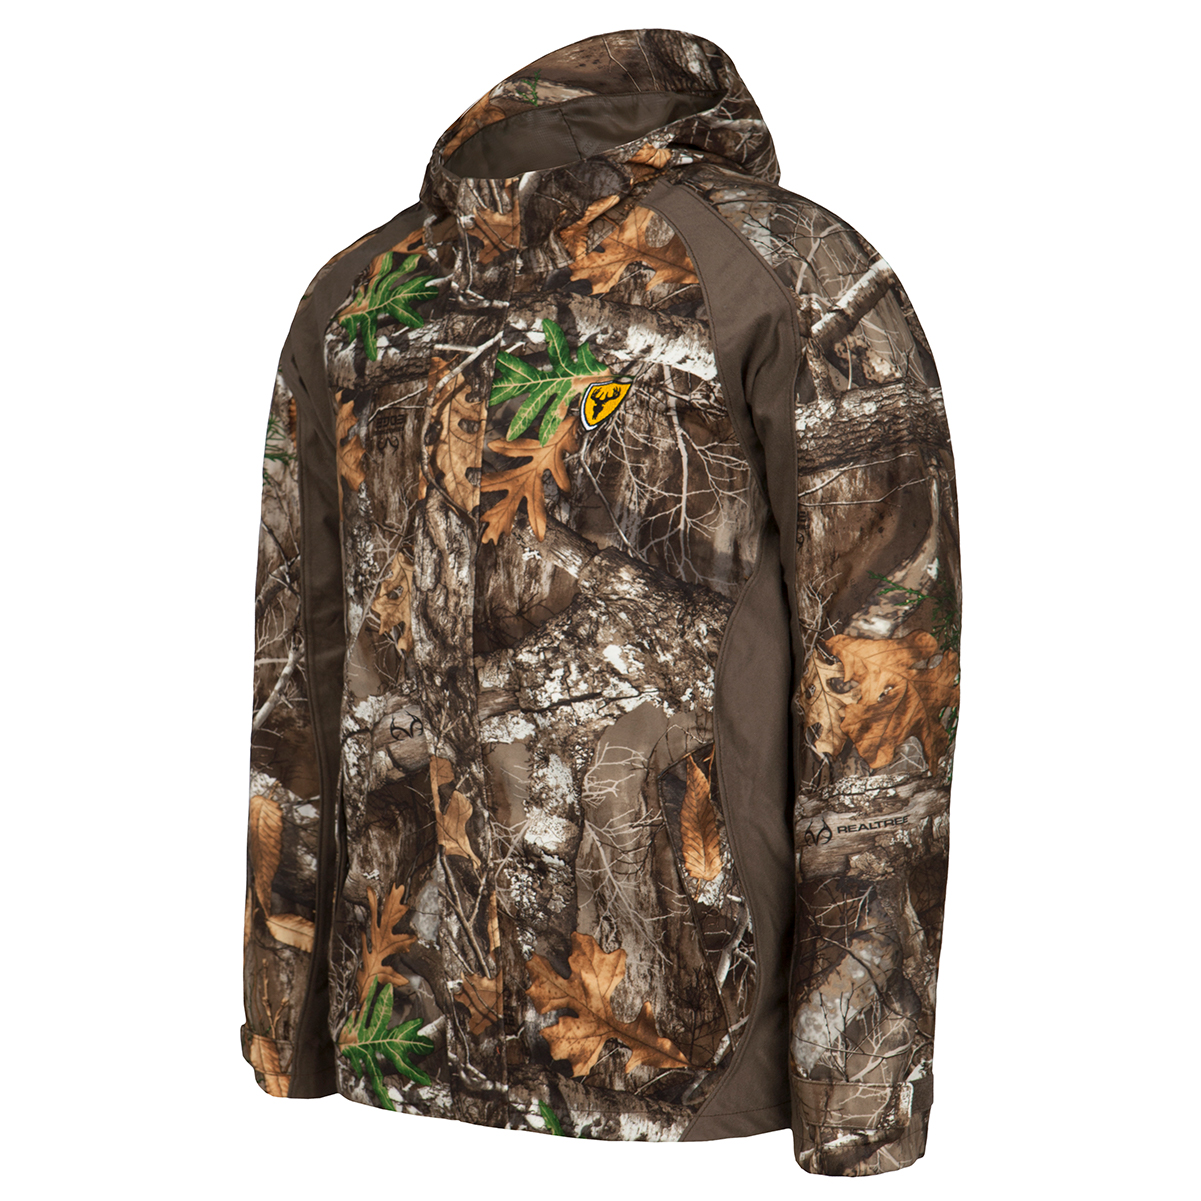 Scent-Blocker-Drencher-Waterproof-Insulated-Jacket-Big-Tall-BigCamo-Side